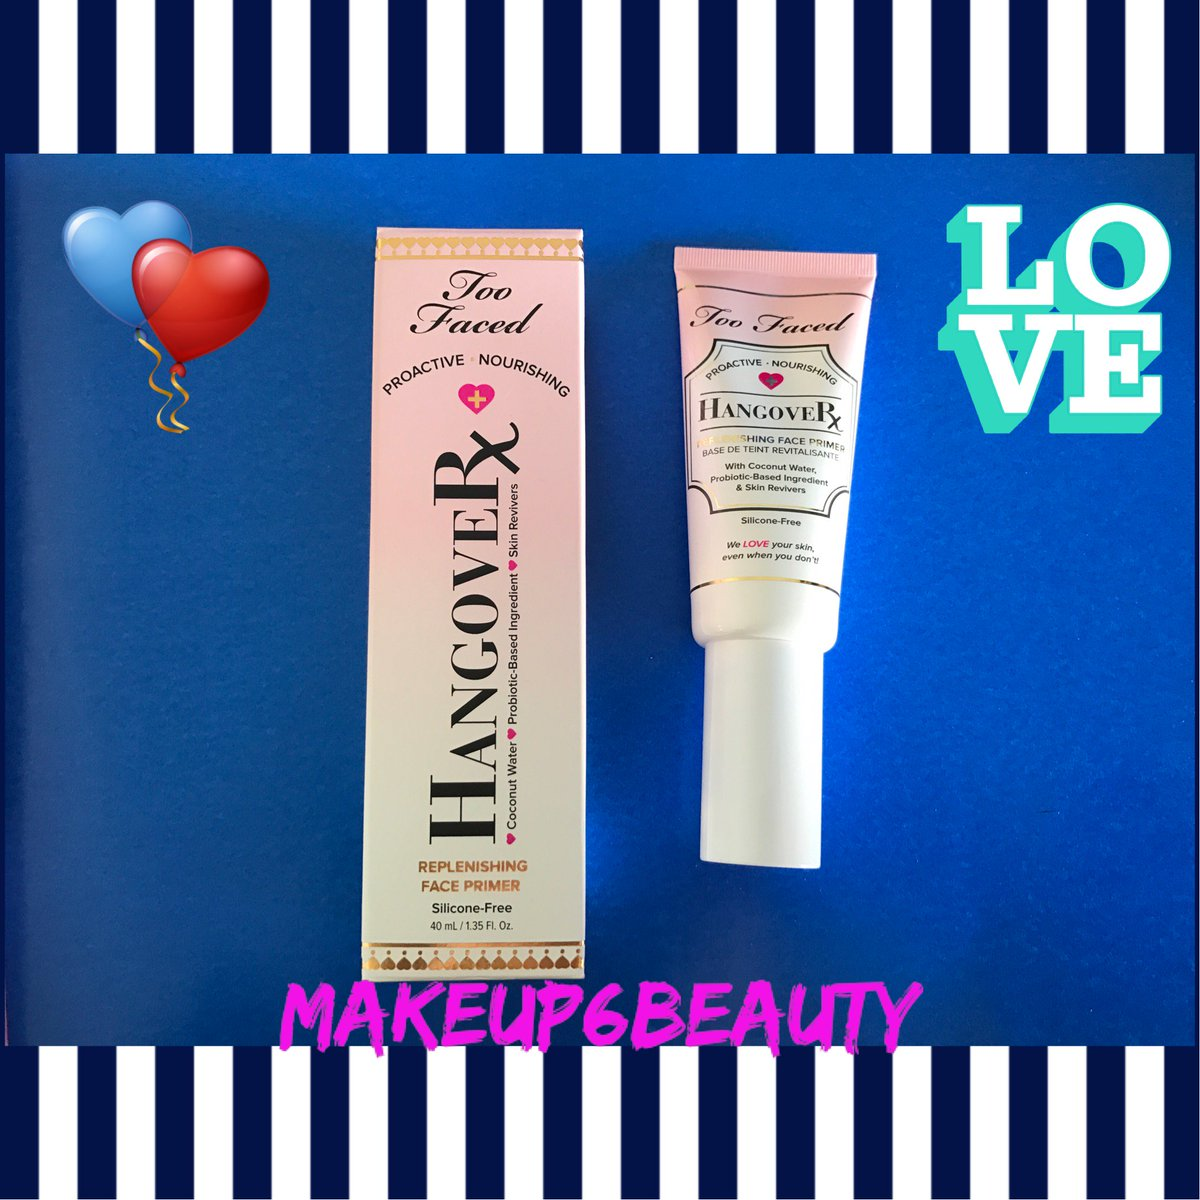 Post primer @TooFaced disponible @sephora_spain #sephora #toofaced #blog #vlog #blogger #vlogger #makeuplove #makeup  https:// goo.gl/ZFy4zY  &nbsp;  <br>http://pic.twitter.com/THkvUELC5Q